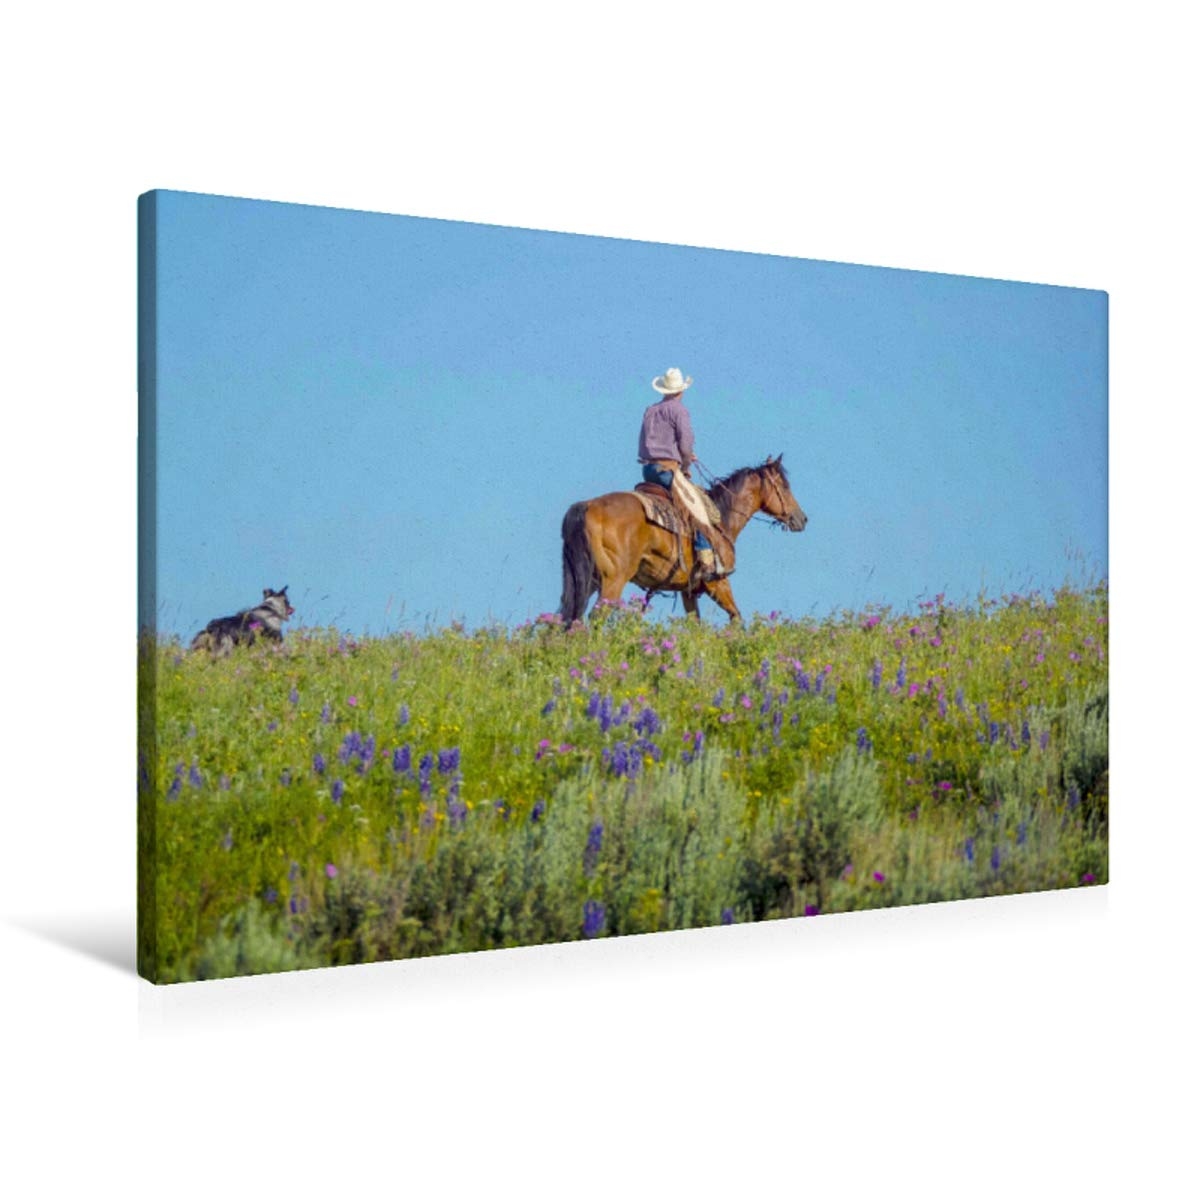 90x60 Premium Textile Canvas 90 x 60 cm Horizontal Cowboy with Dog and Horse